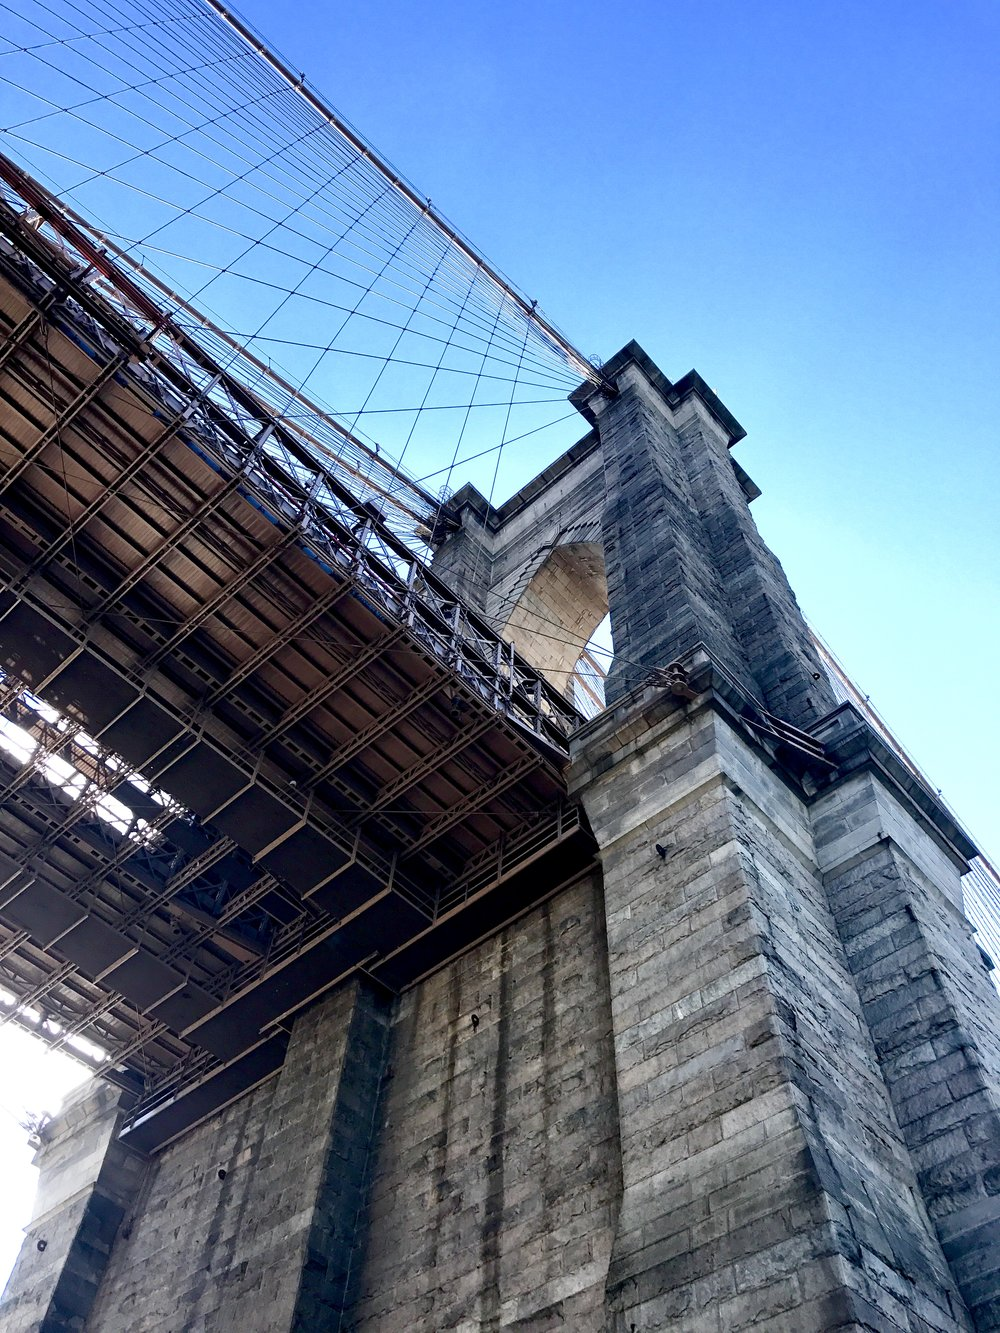 BROOKLYN BRIDGE MILLENNIALS - The bridge connects us toEverything, but wifiFails to bridge the gapThat matters, when we crossBack and forth —Between tall buildingsAnd small people, helplesslySearching for a signal —Fool's gold is out of range.